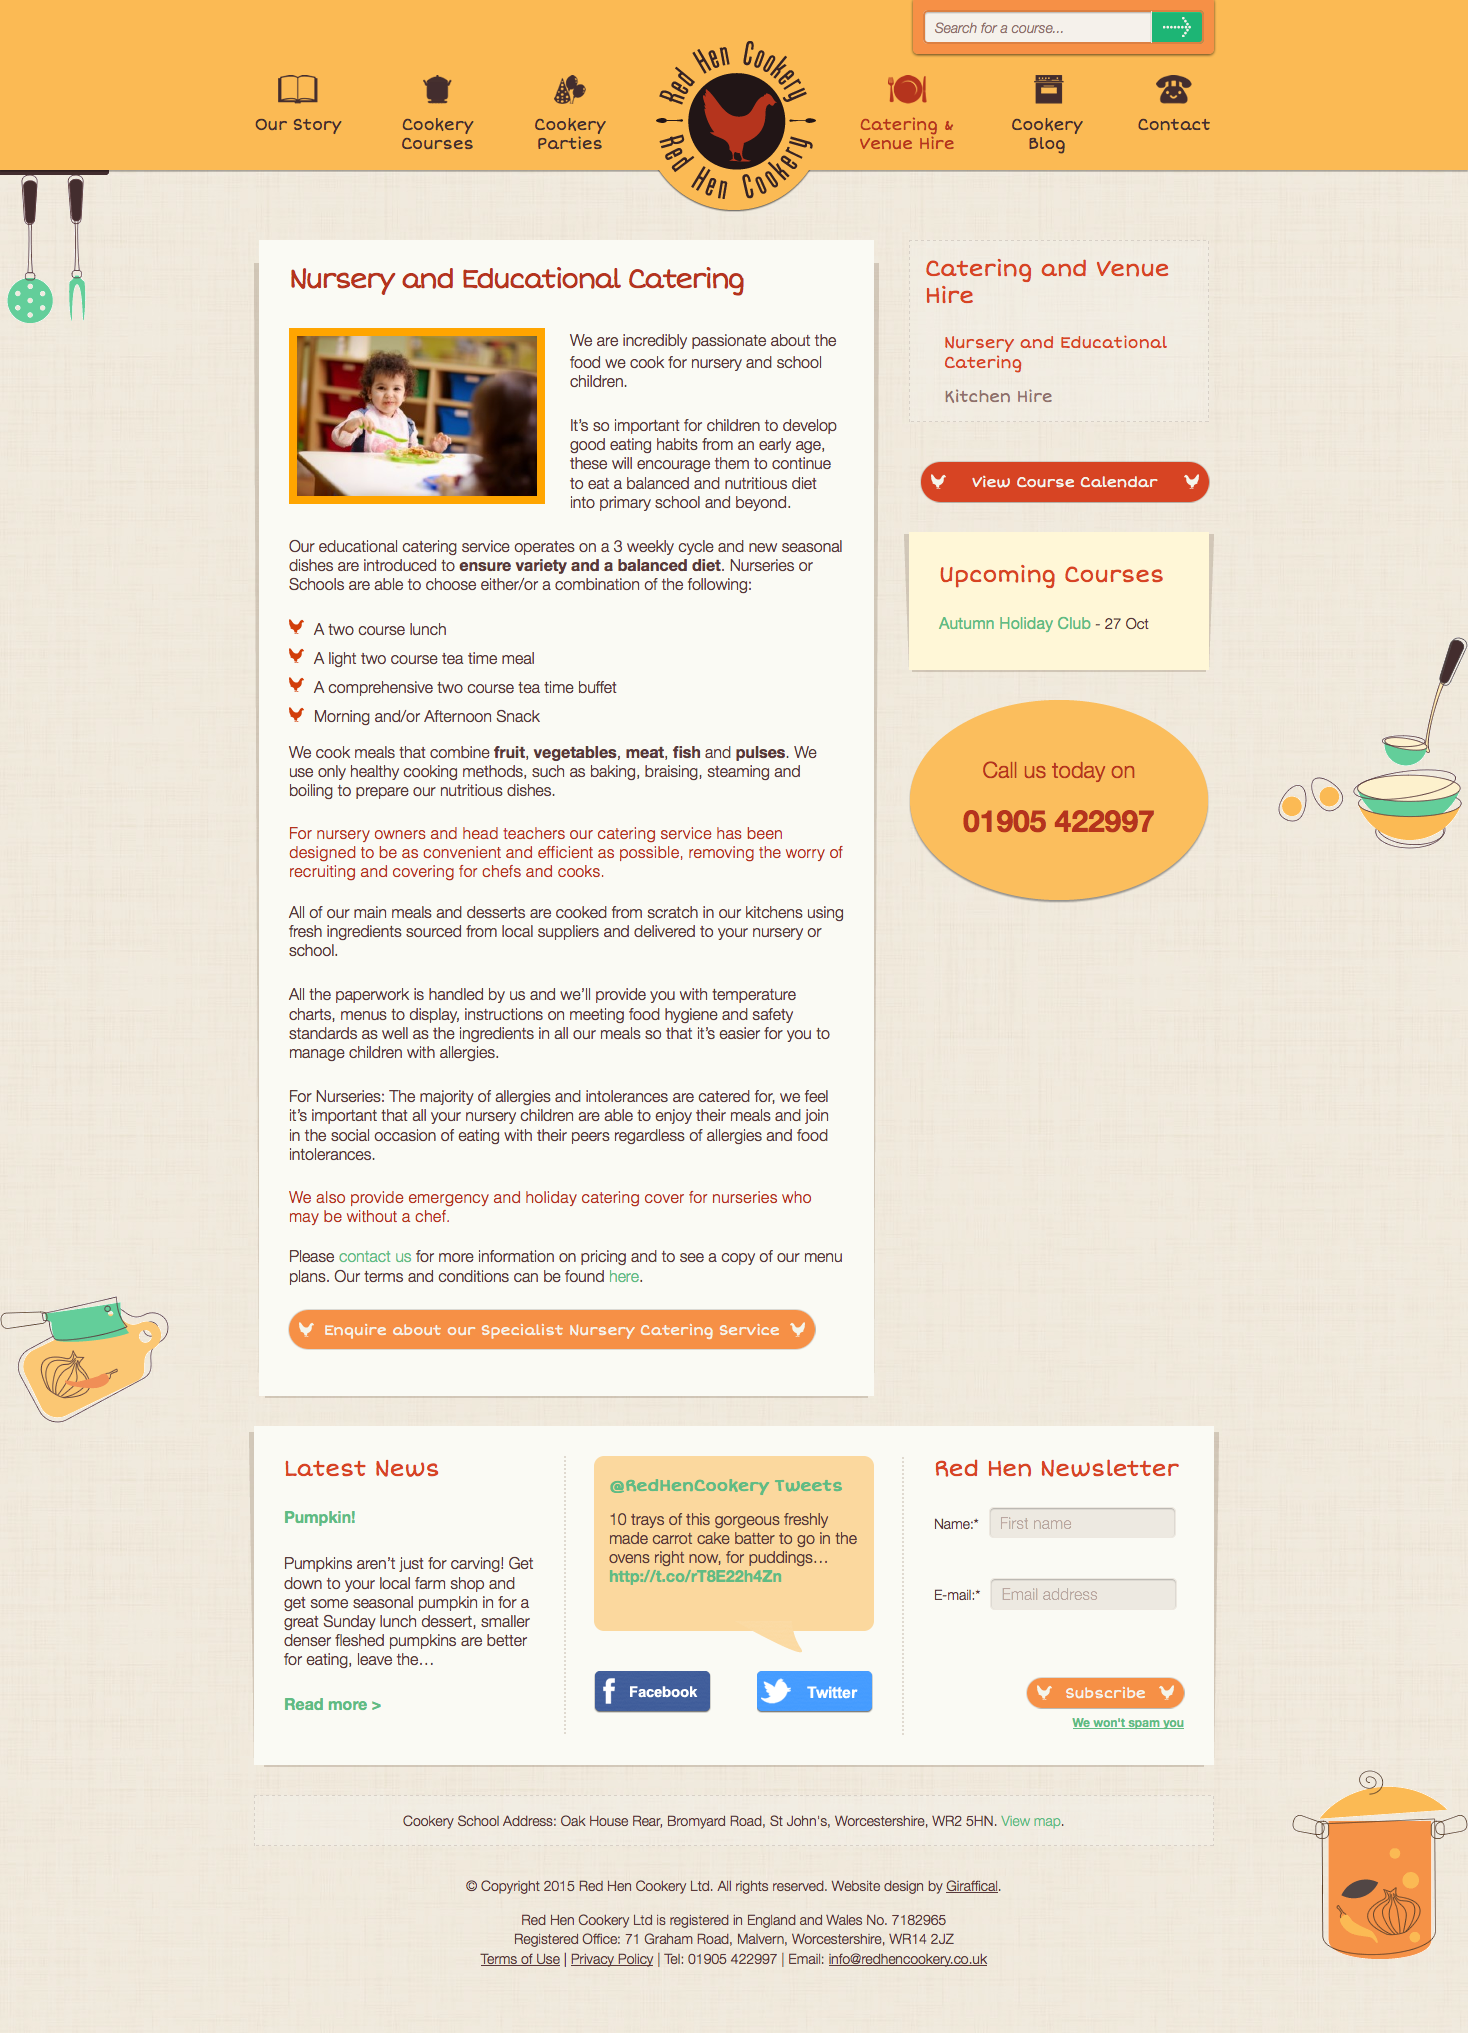 Red Hen Cookery Website Redesign - Catering Page